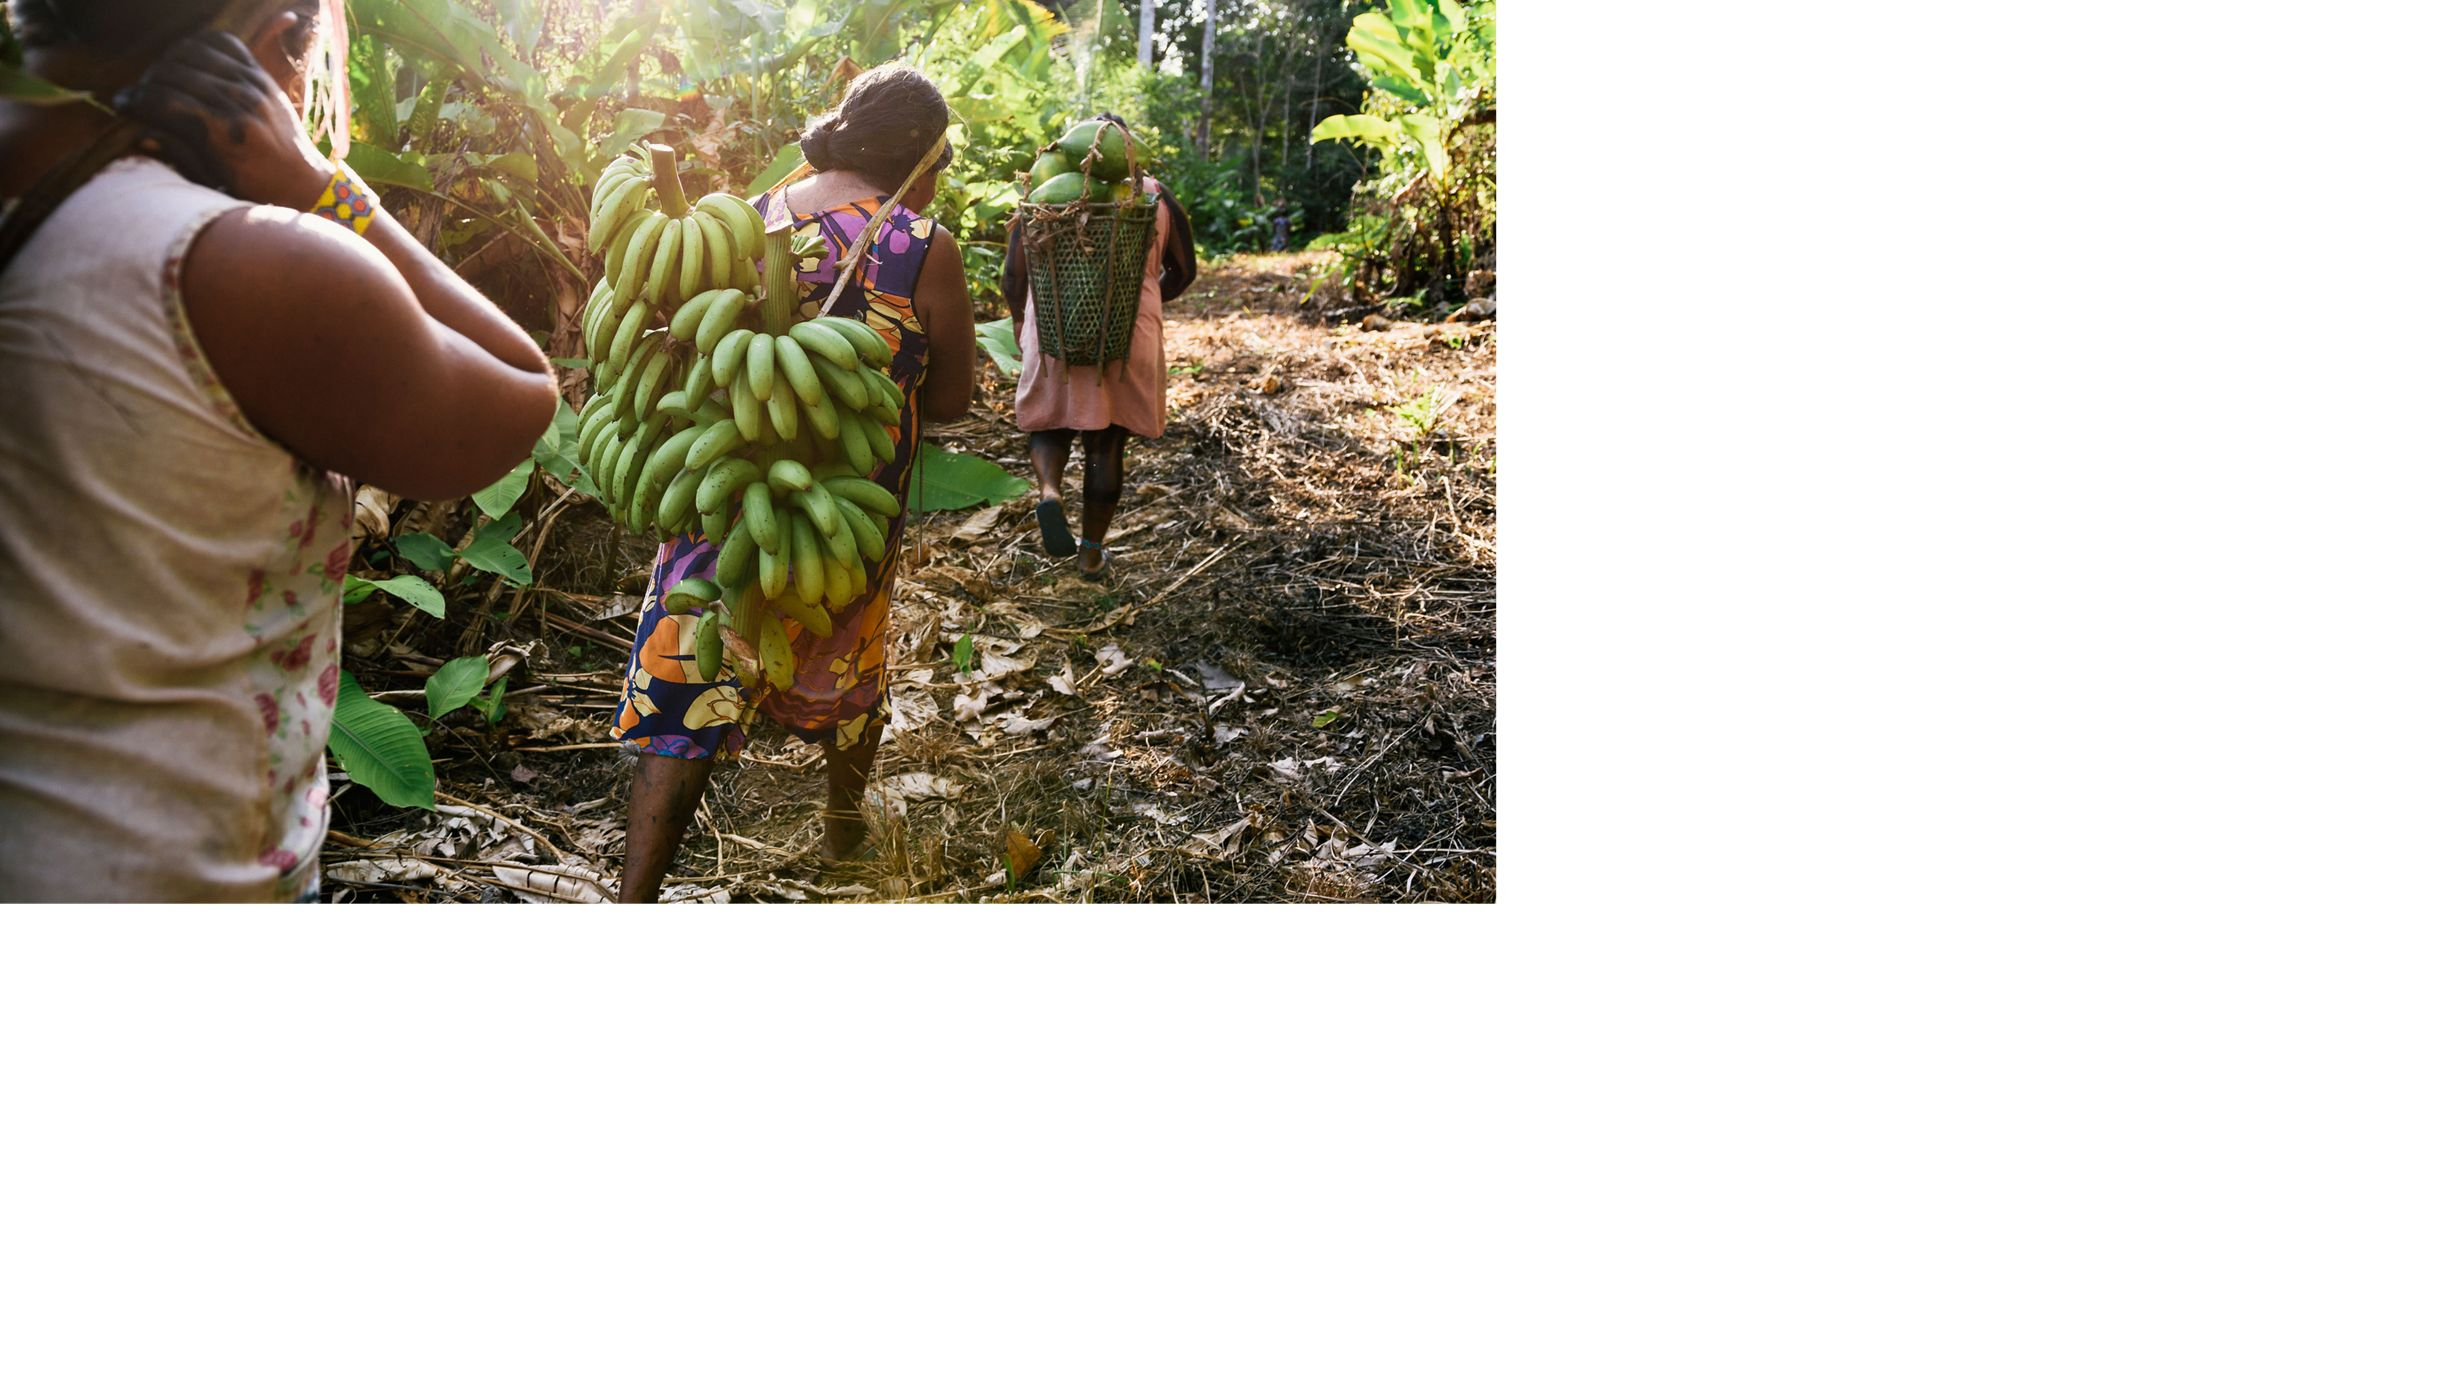 Xikrin women gather bananas and papayas.